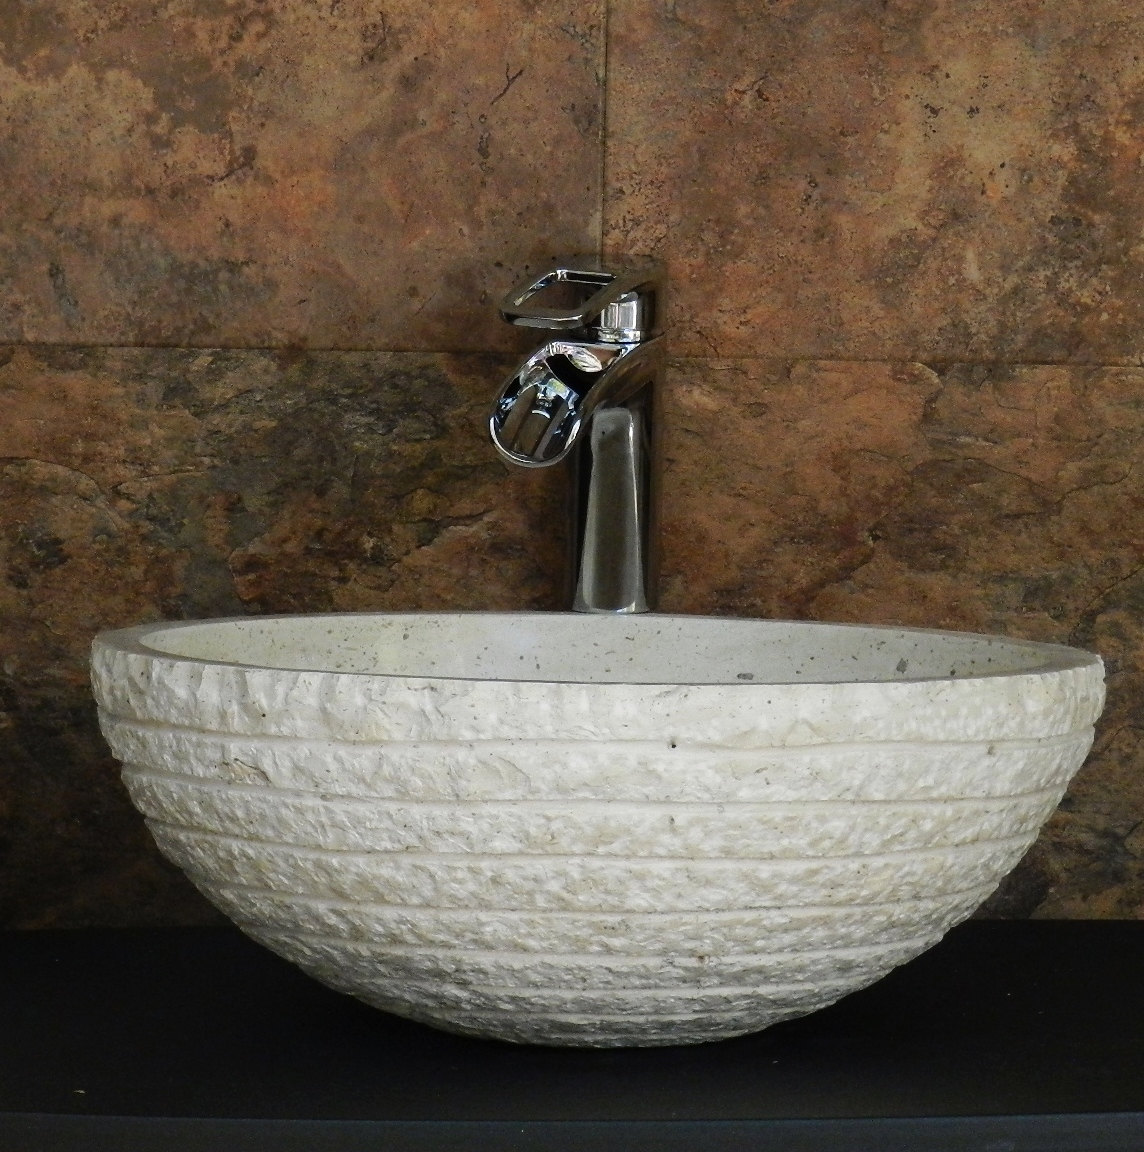 stone bowl sinks bathroom stylish and diverse vessel bathroom sinks 20687